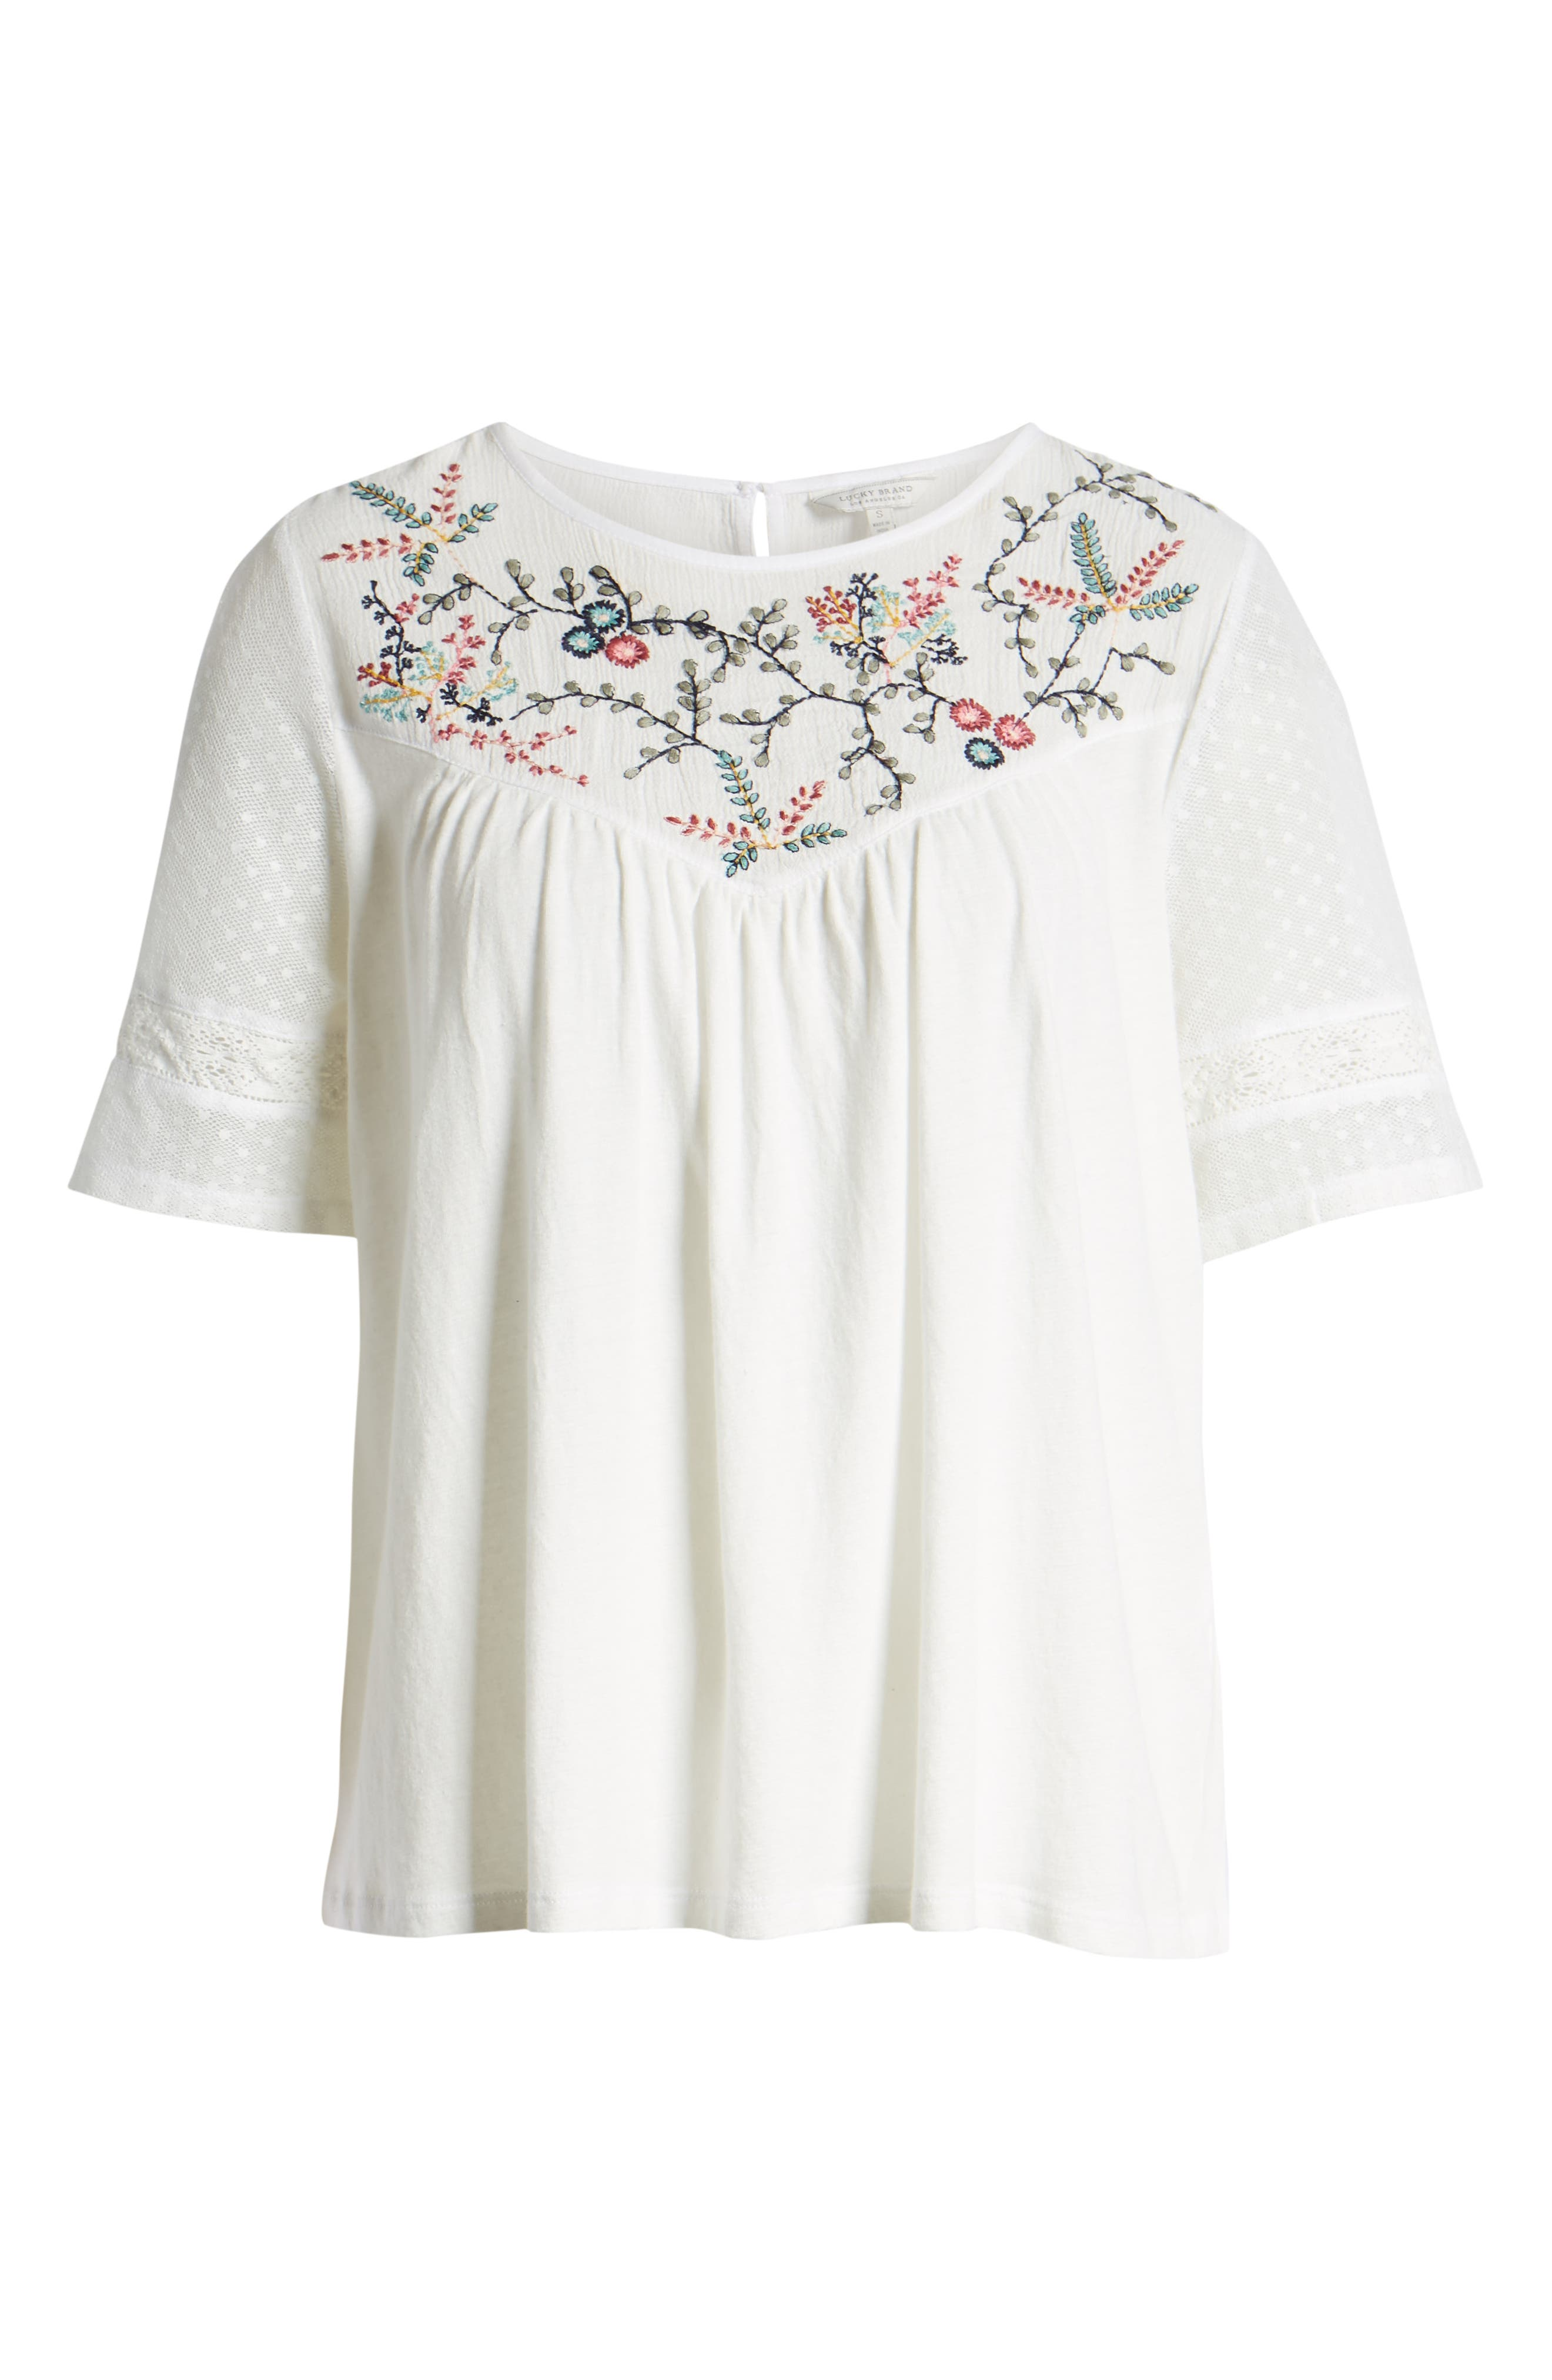 LUCKY BRAND,                             Embroidered Yoke Peasant Top,                             Alternate thumbnail 6, color,                             LUCKY WHITE